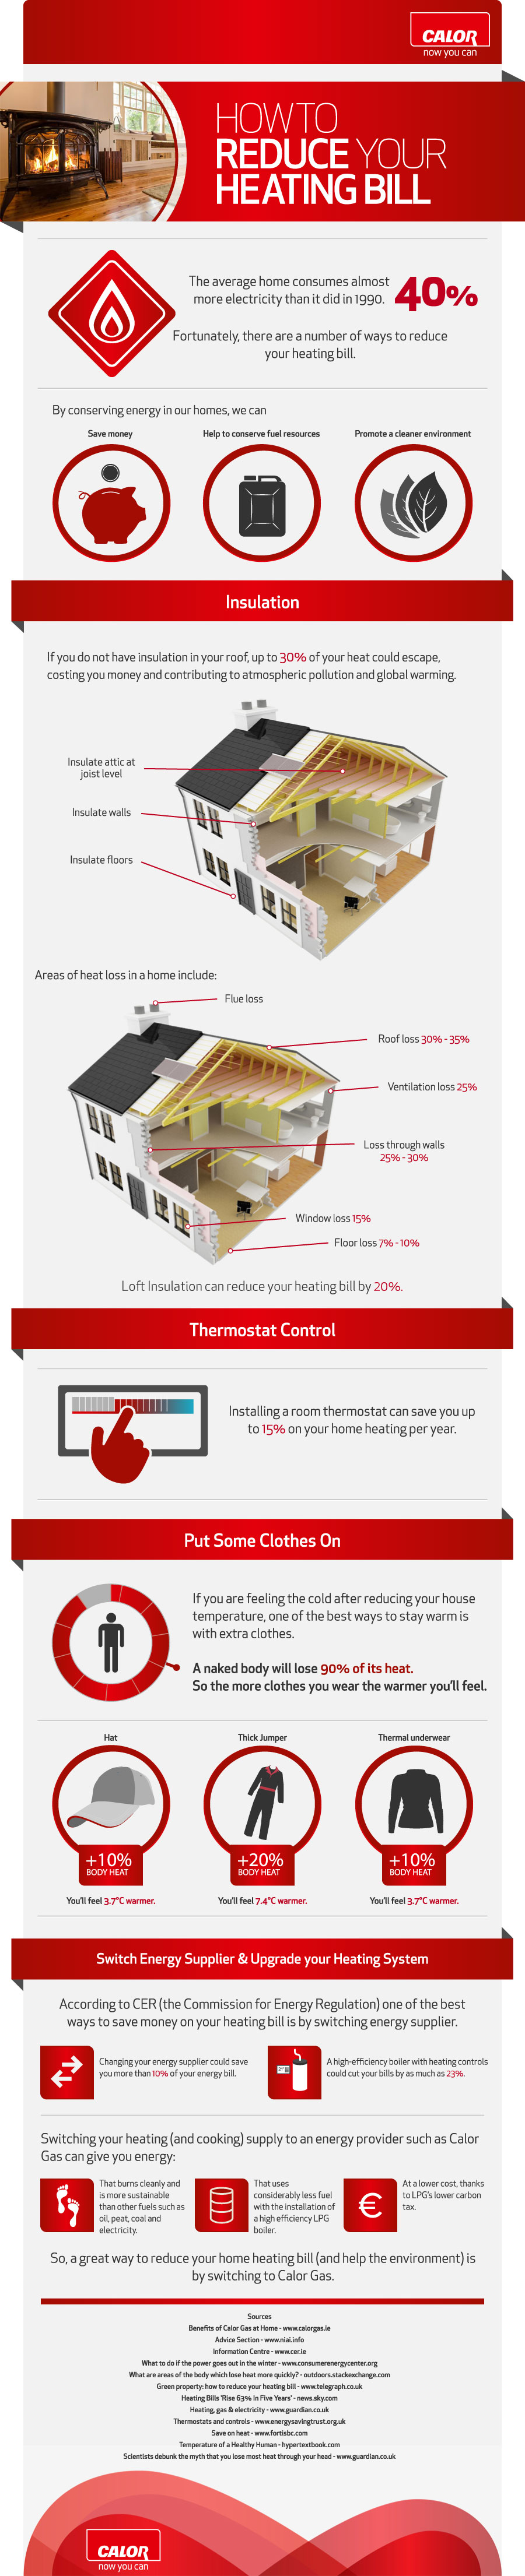 How To Reduce Your Home Heating Bill [Infographic] | Business 2 Community